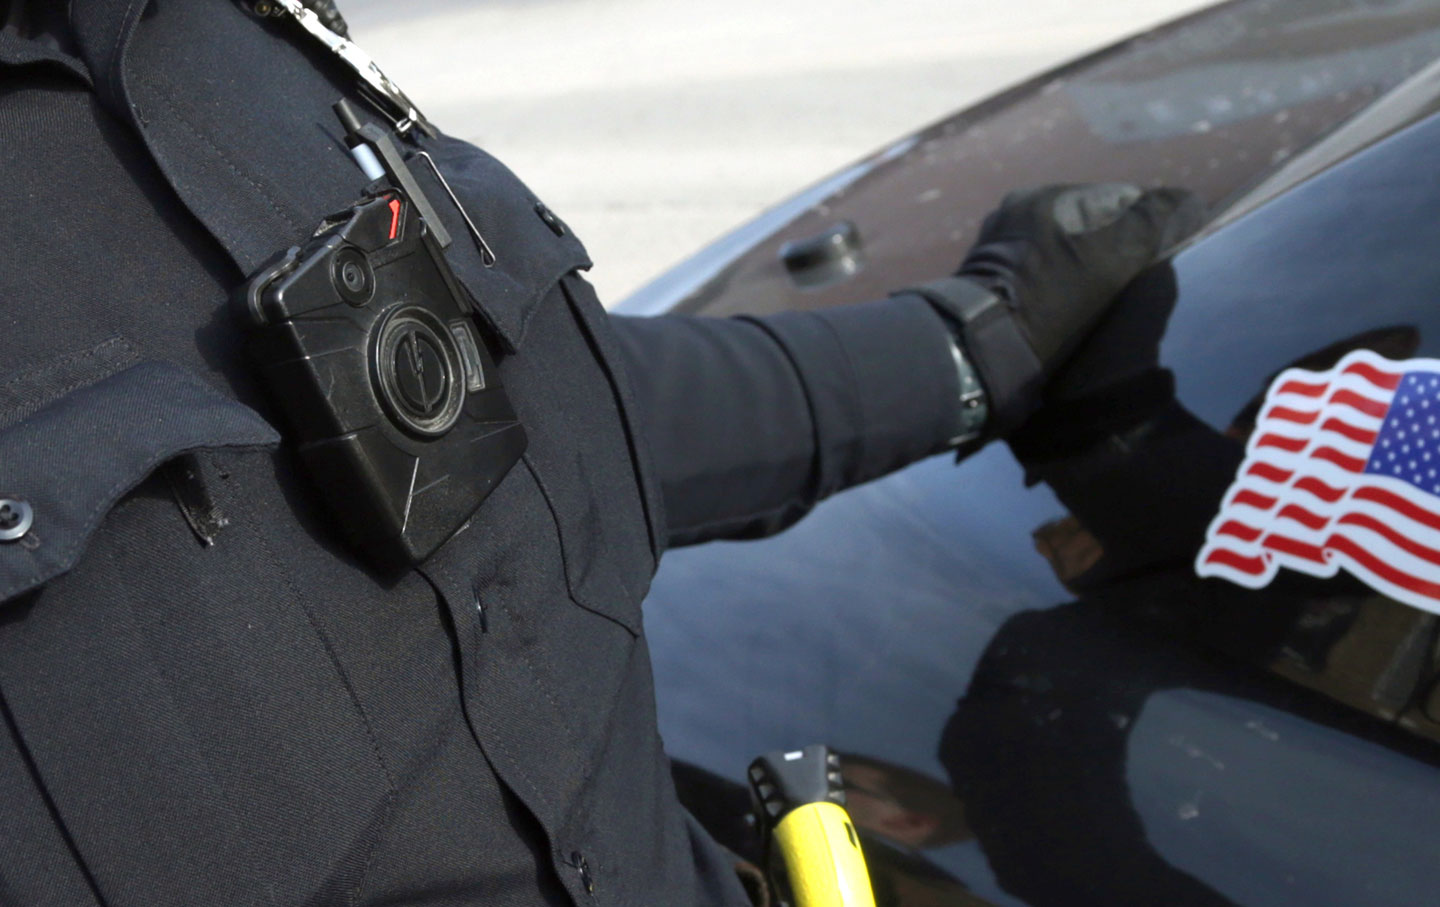 A Duluth, Minnesota police officer wearing a body camera.